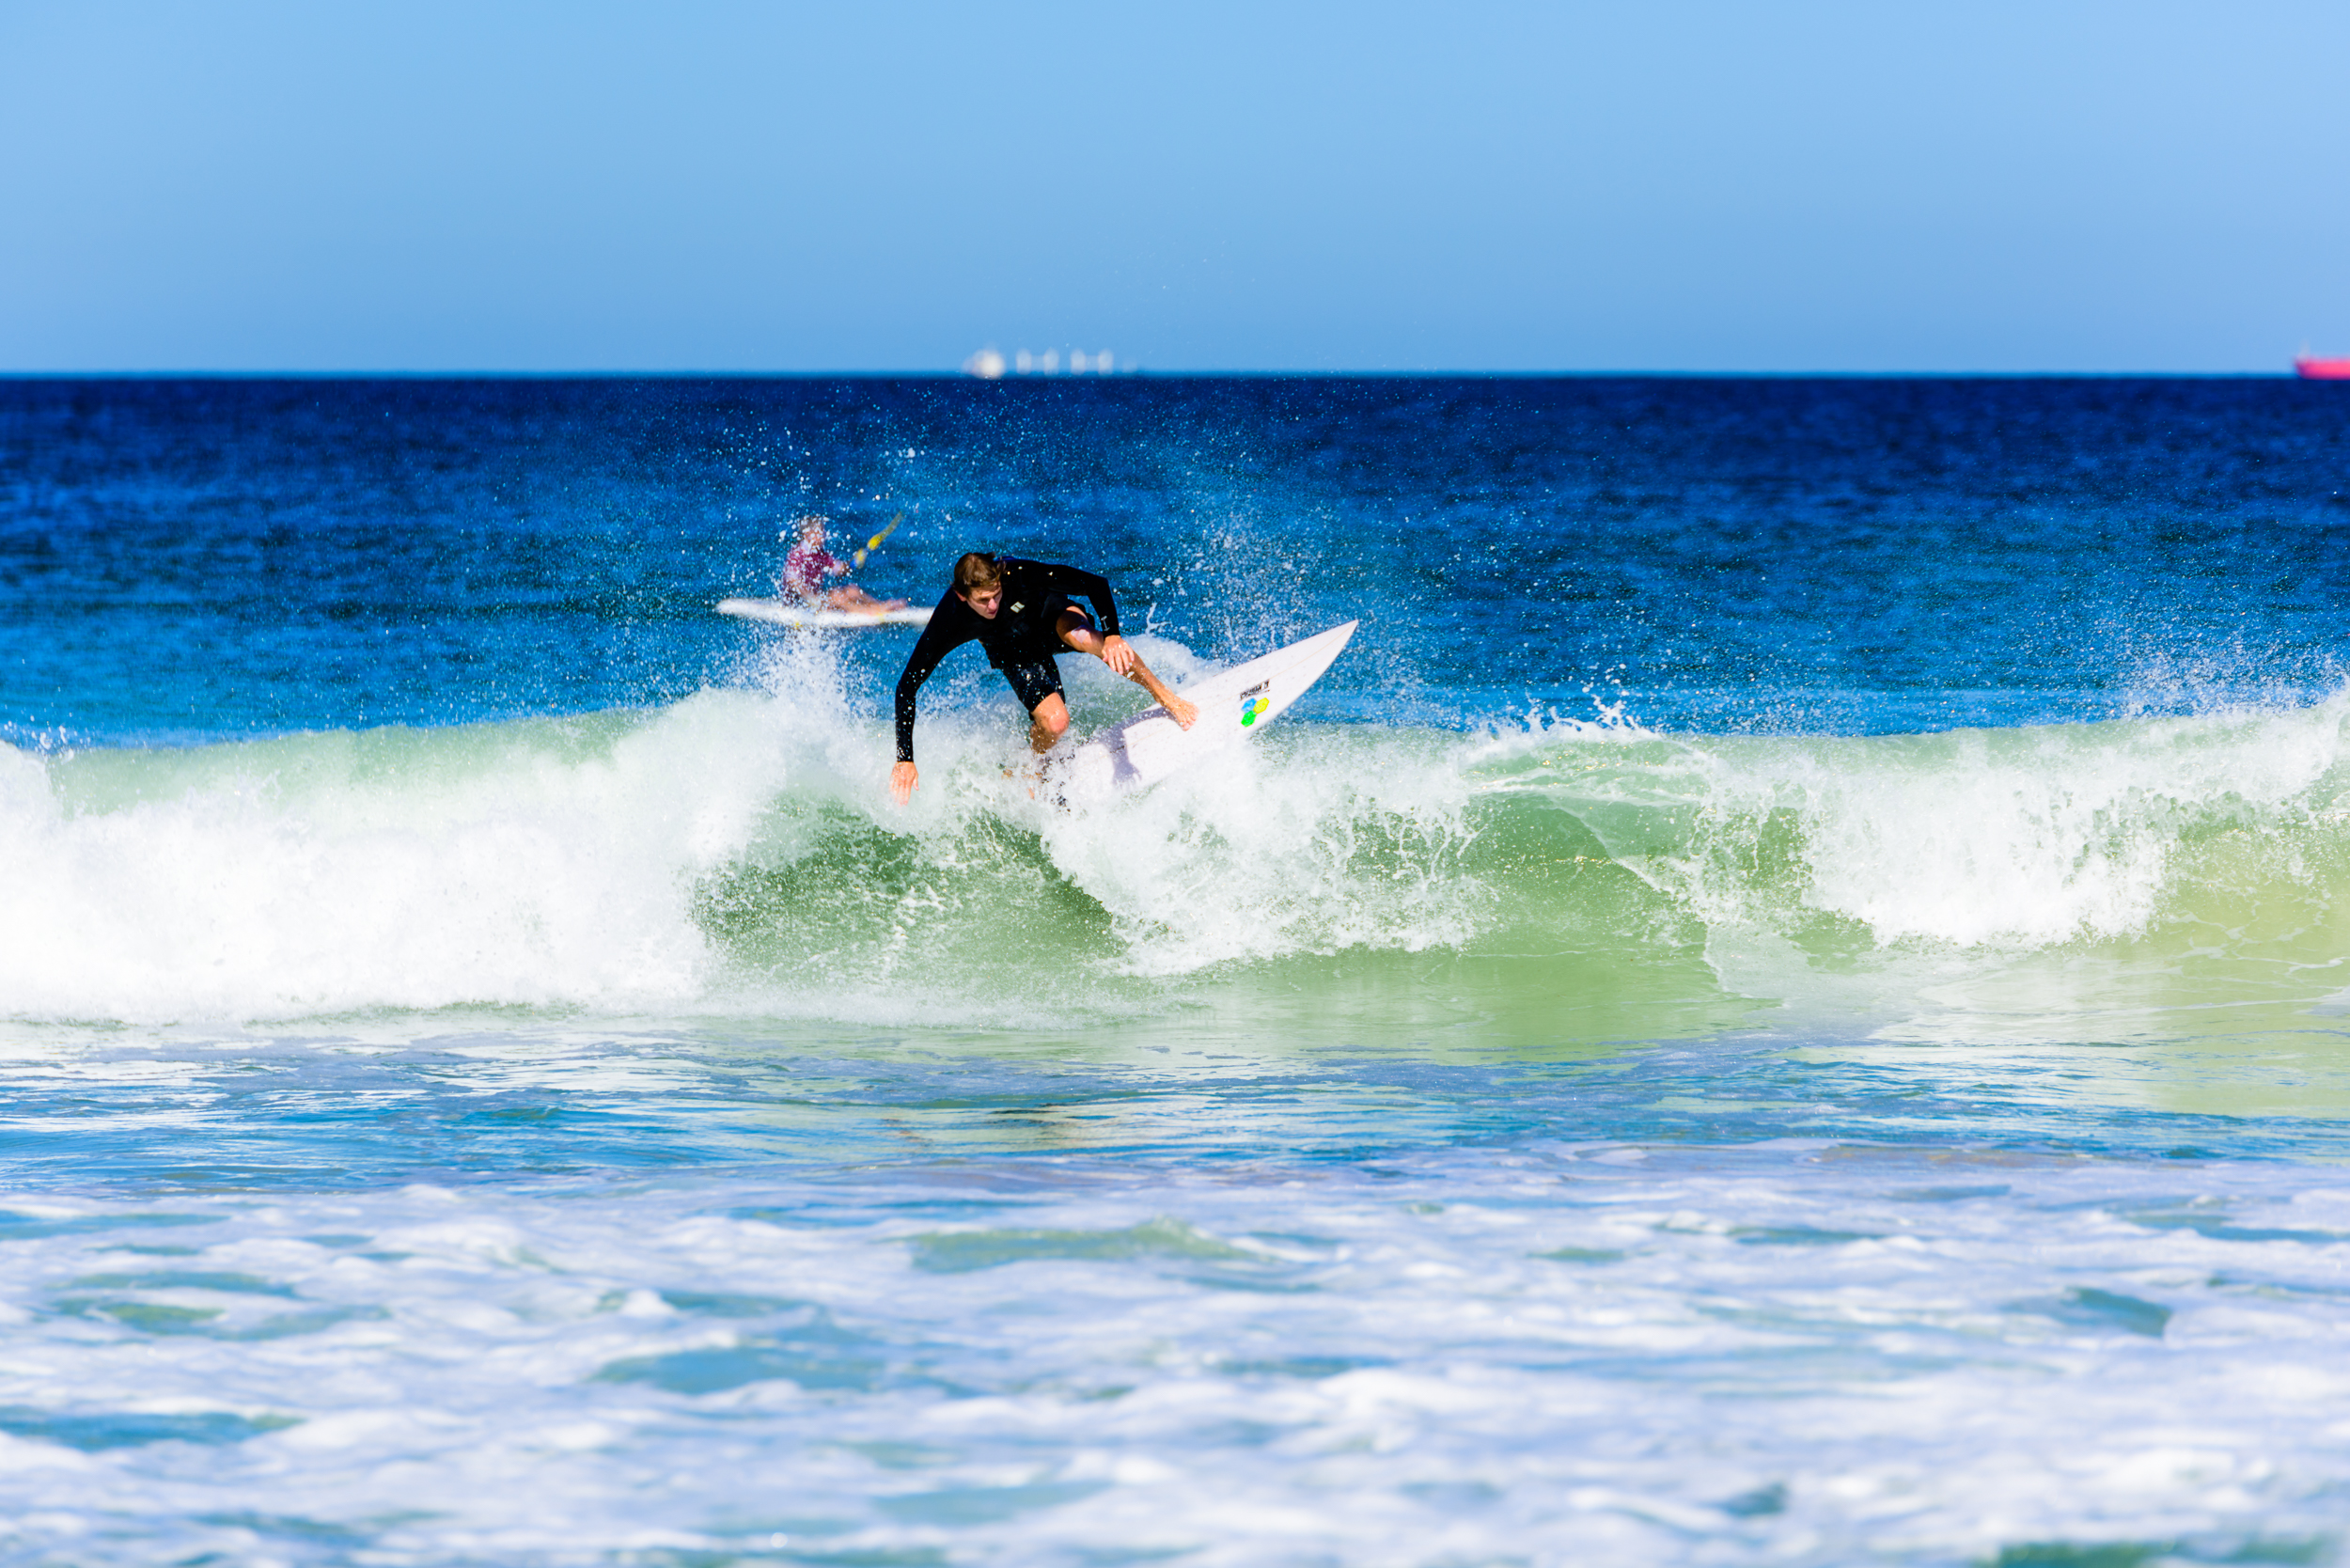 Spyrides_Kyle_Scarbourough_Surf_#1Sessions_23.2.2017-32.jpg